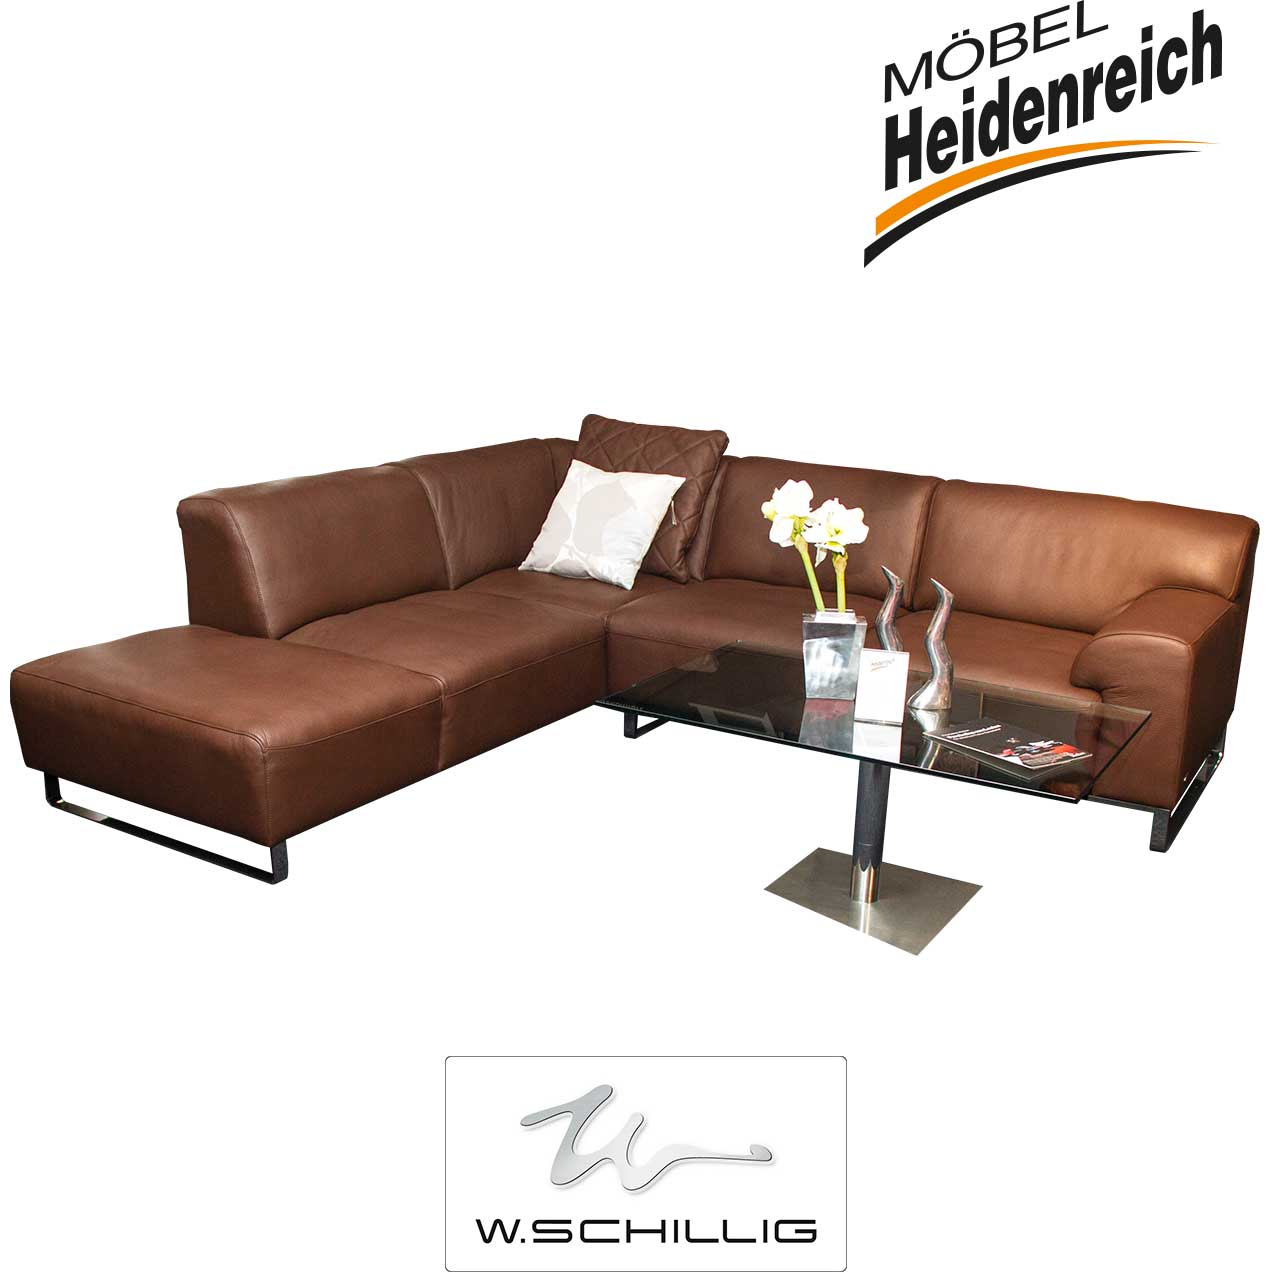 ecksofas m bel m bel heidenreich. Black Bedroom Furniture Sets. Home Design Ideas